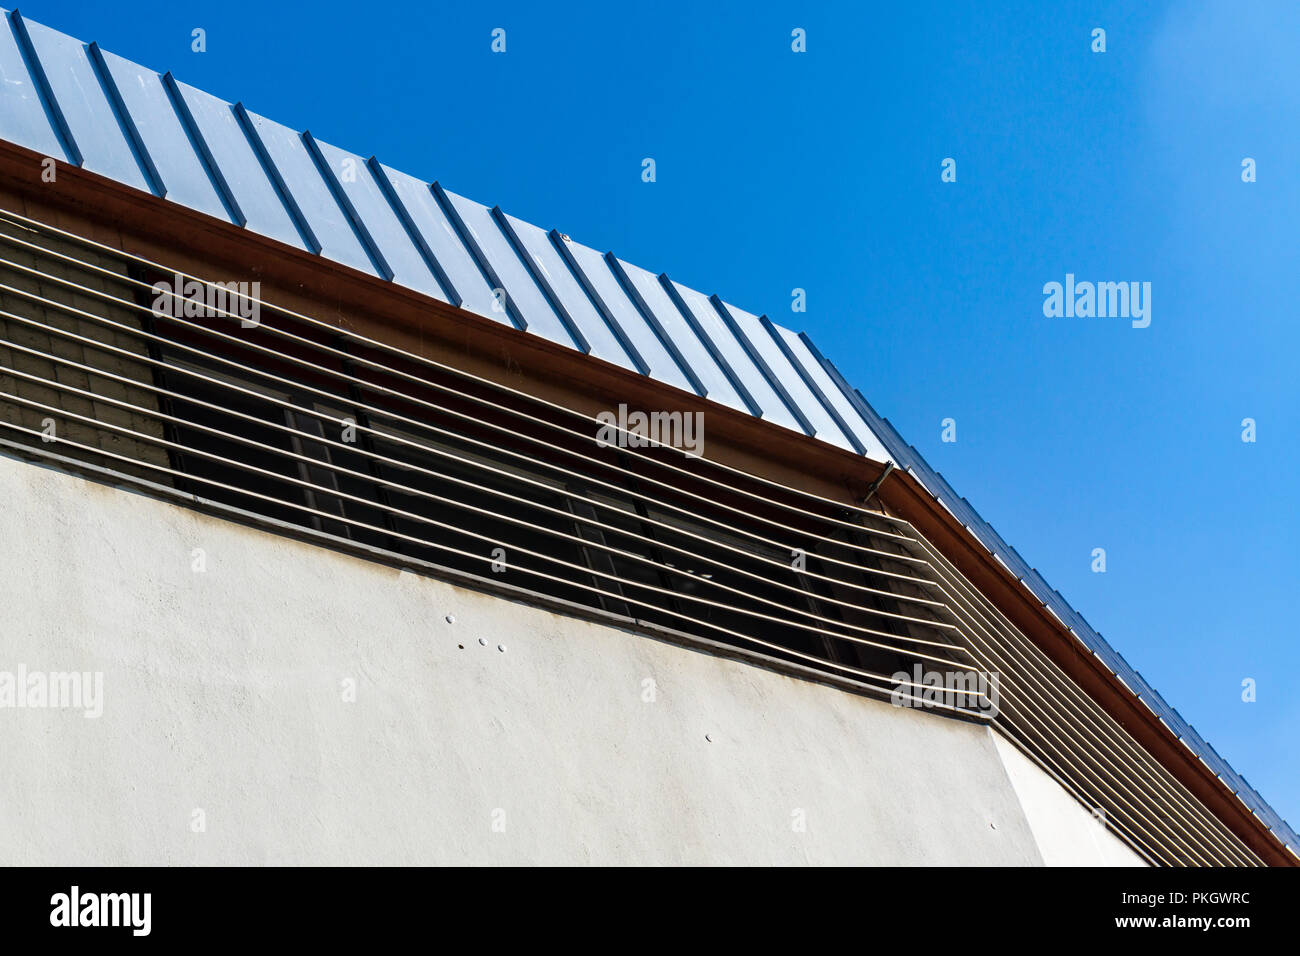 Berlin, Germany, July 26, 2018:  Close-Up of Architectural Feature of Roof of Warehouse - Stock Image